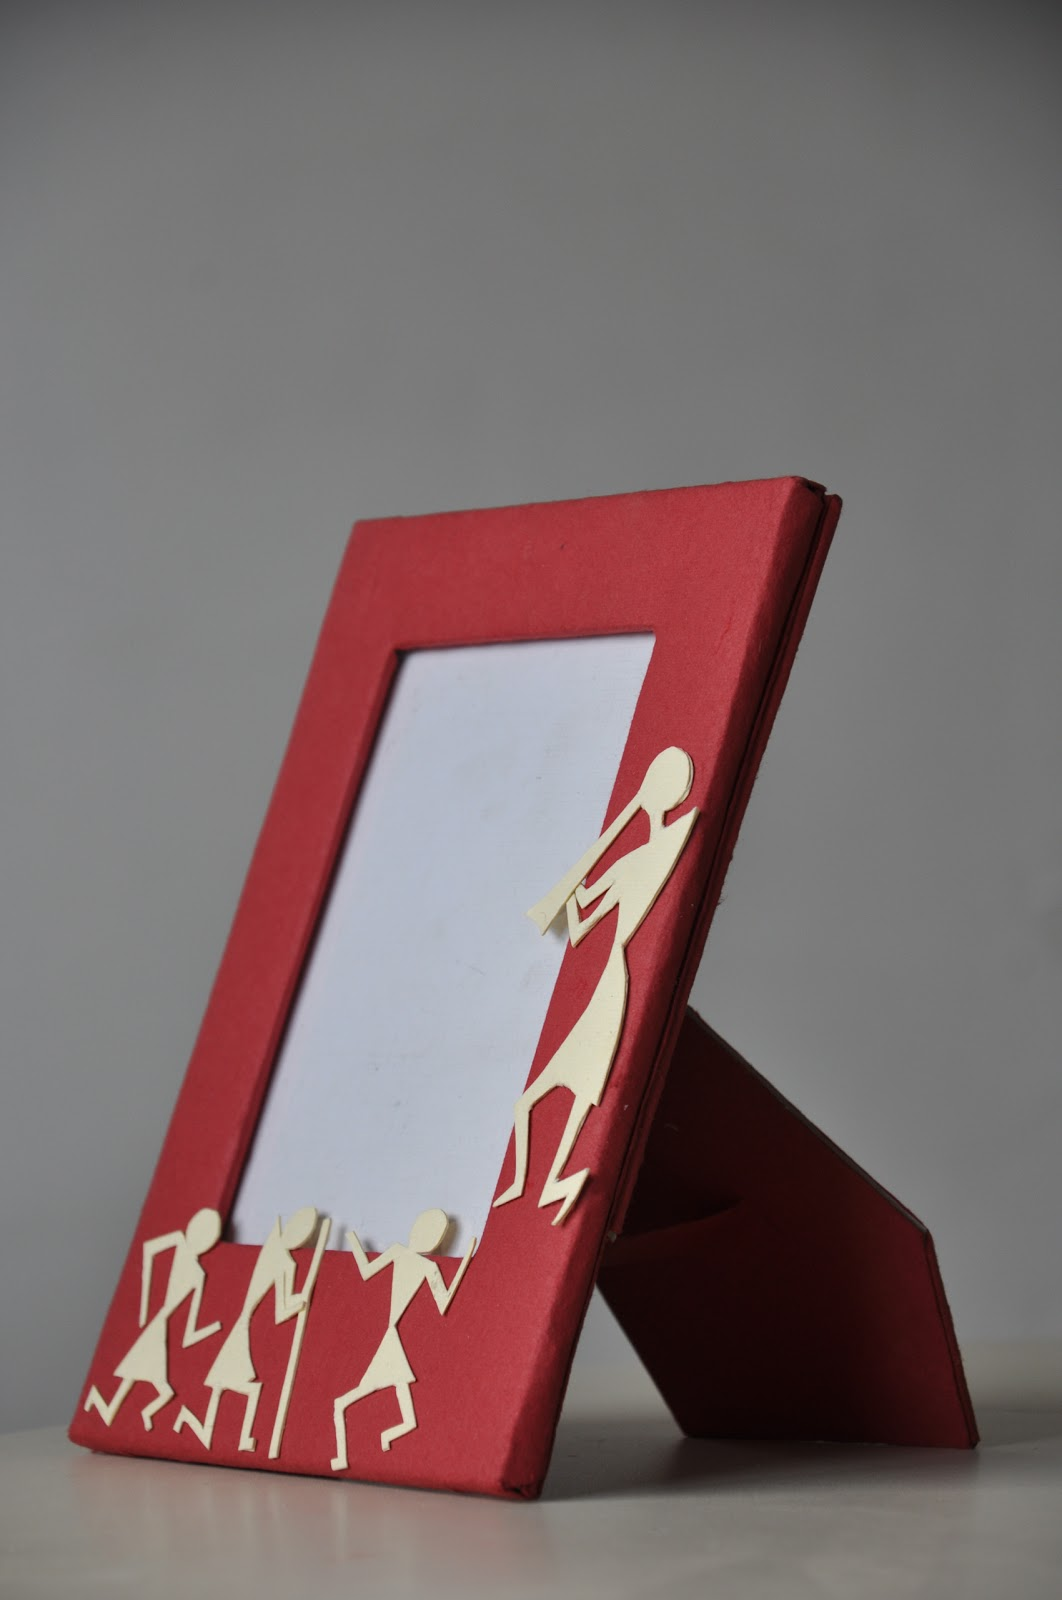 Past imaginations warli photo frames the research and idea generation i had to come up with an end product inspired by warli paintings this was my first attempt in making photo frames jeuxipadfo Gallery